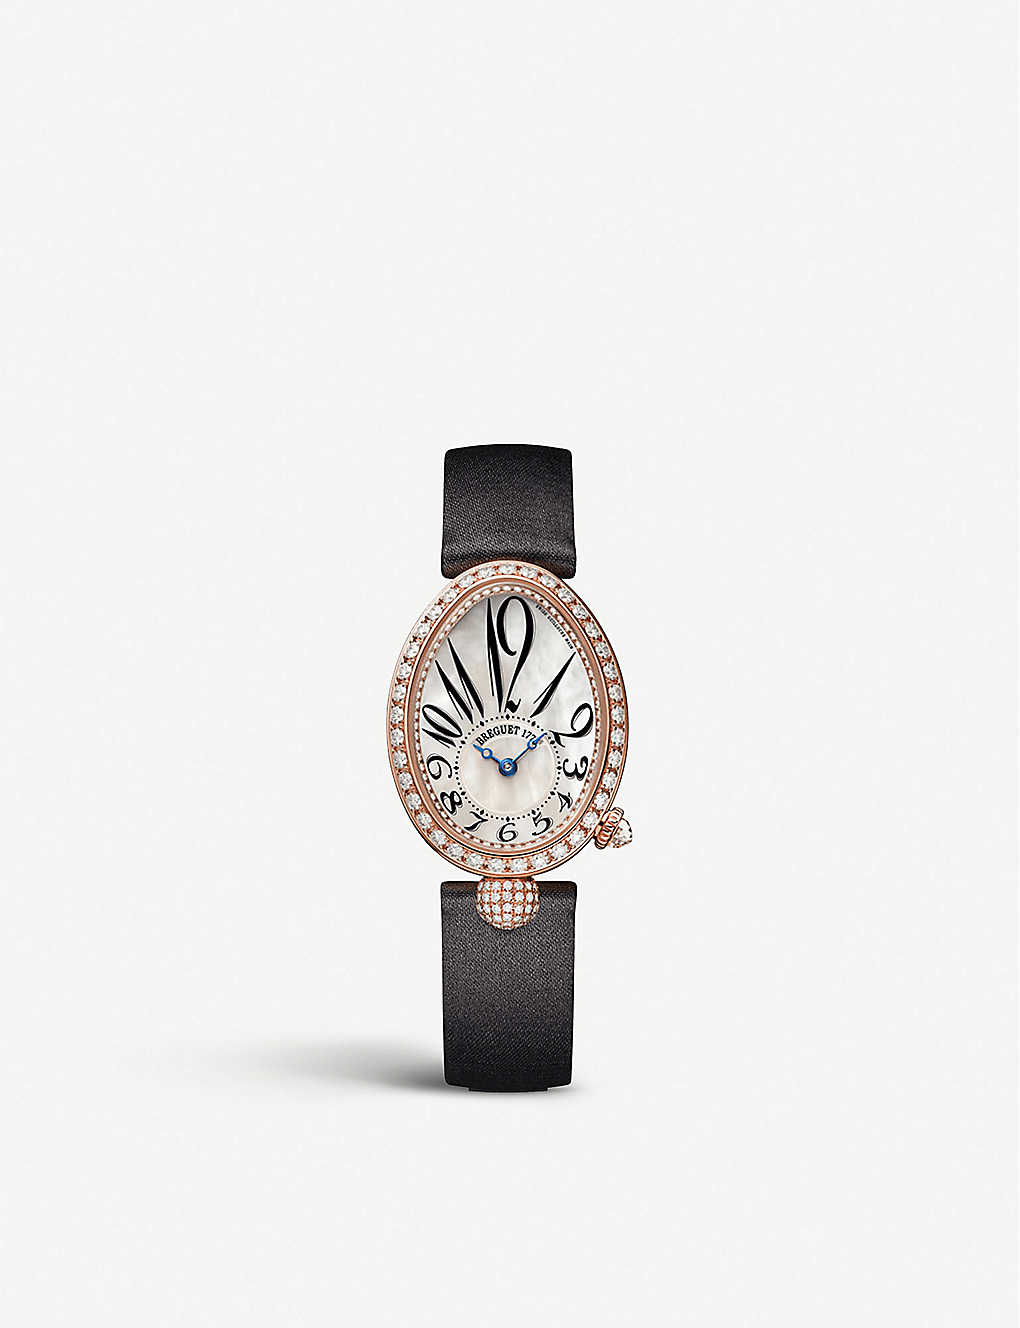 BREGUET: 8928BR/5W/944/DD0D Queen of Naples 18ct rose-gold, diamond and mother-of-pearl watch